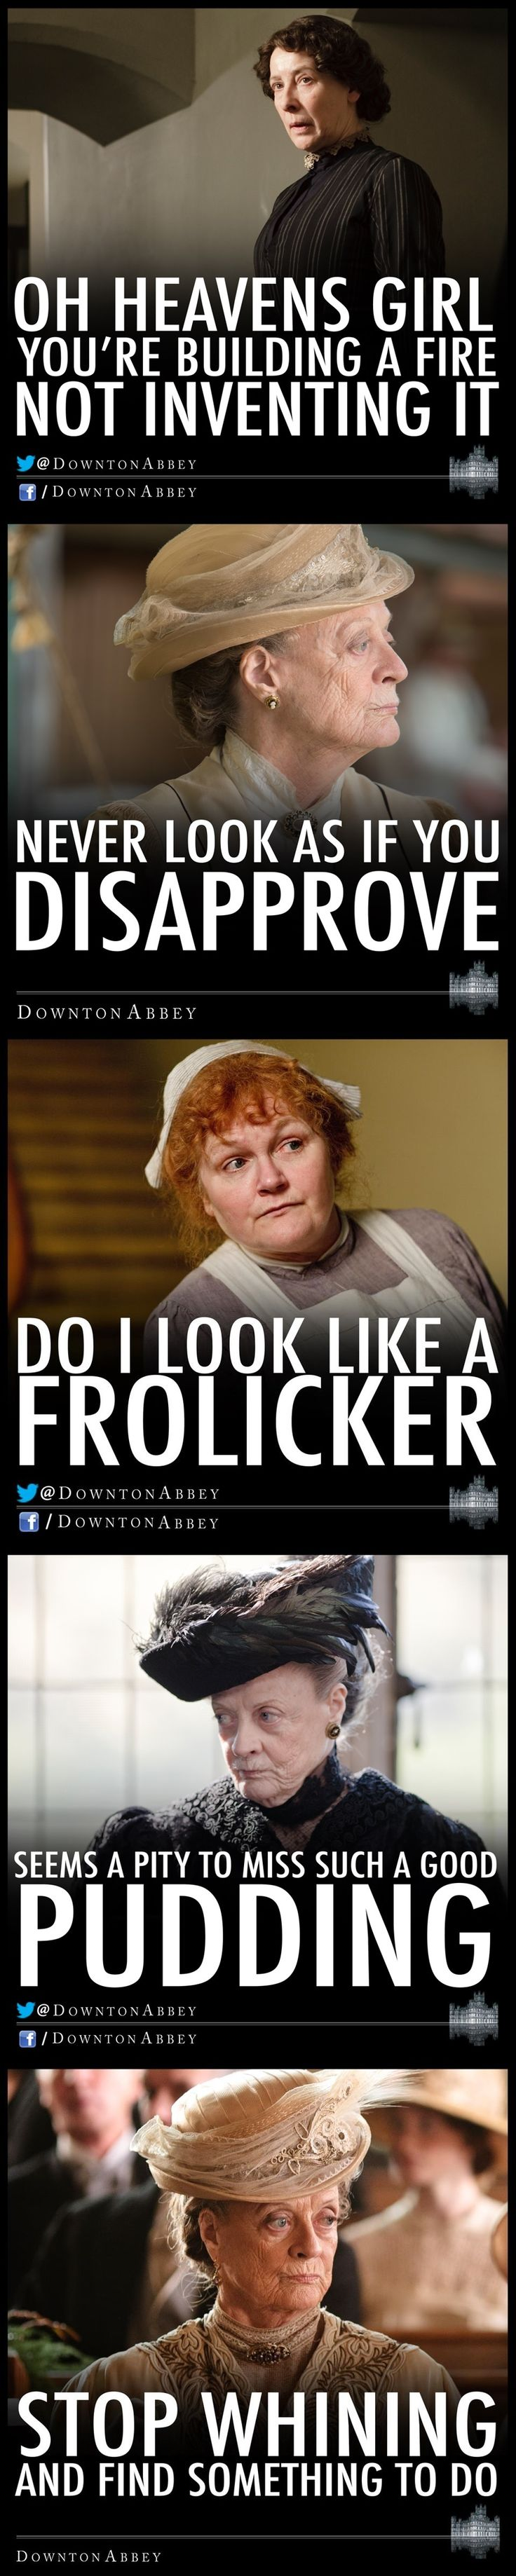 downton abbey funnies